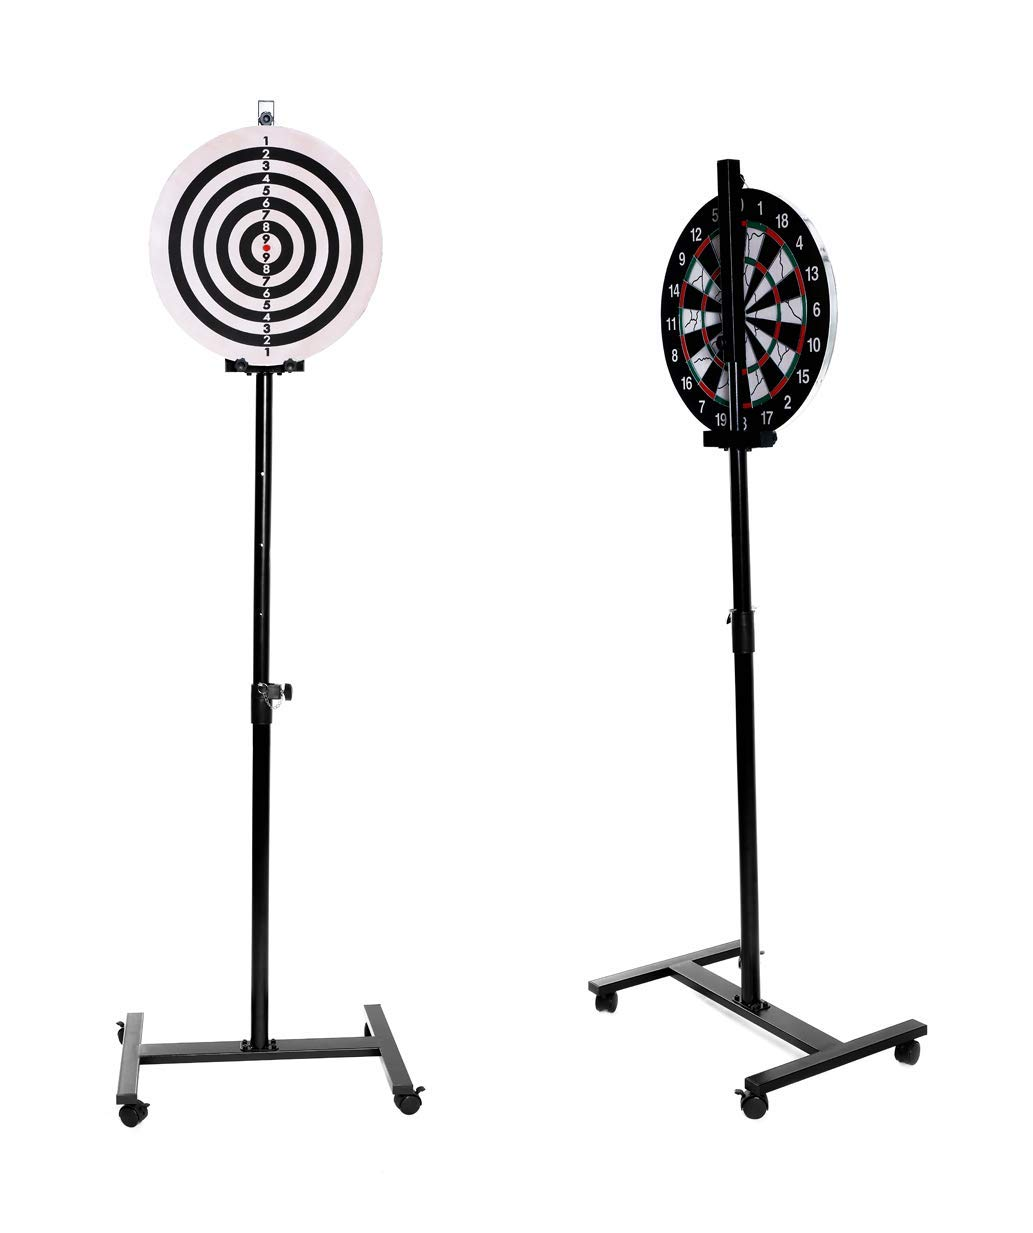 SPRAWL Dart Game Set-Dartboard Stand-One 18 Dart Board-6 Steel Tip Darts-Indoor Outdoor Game